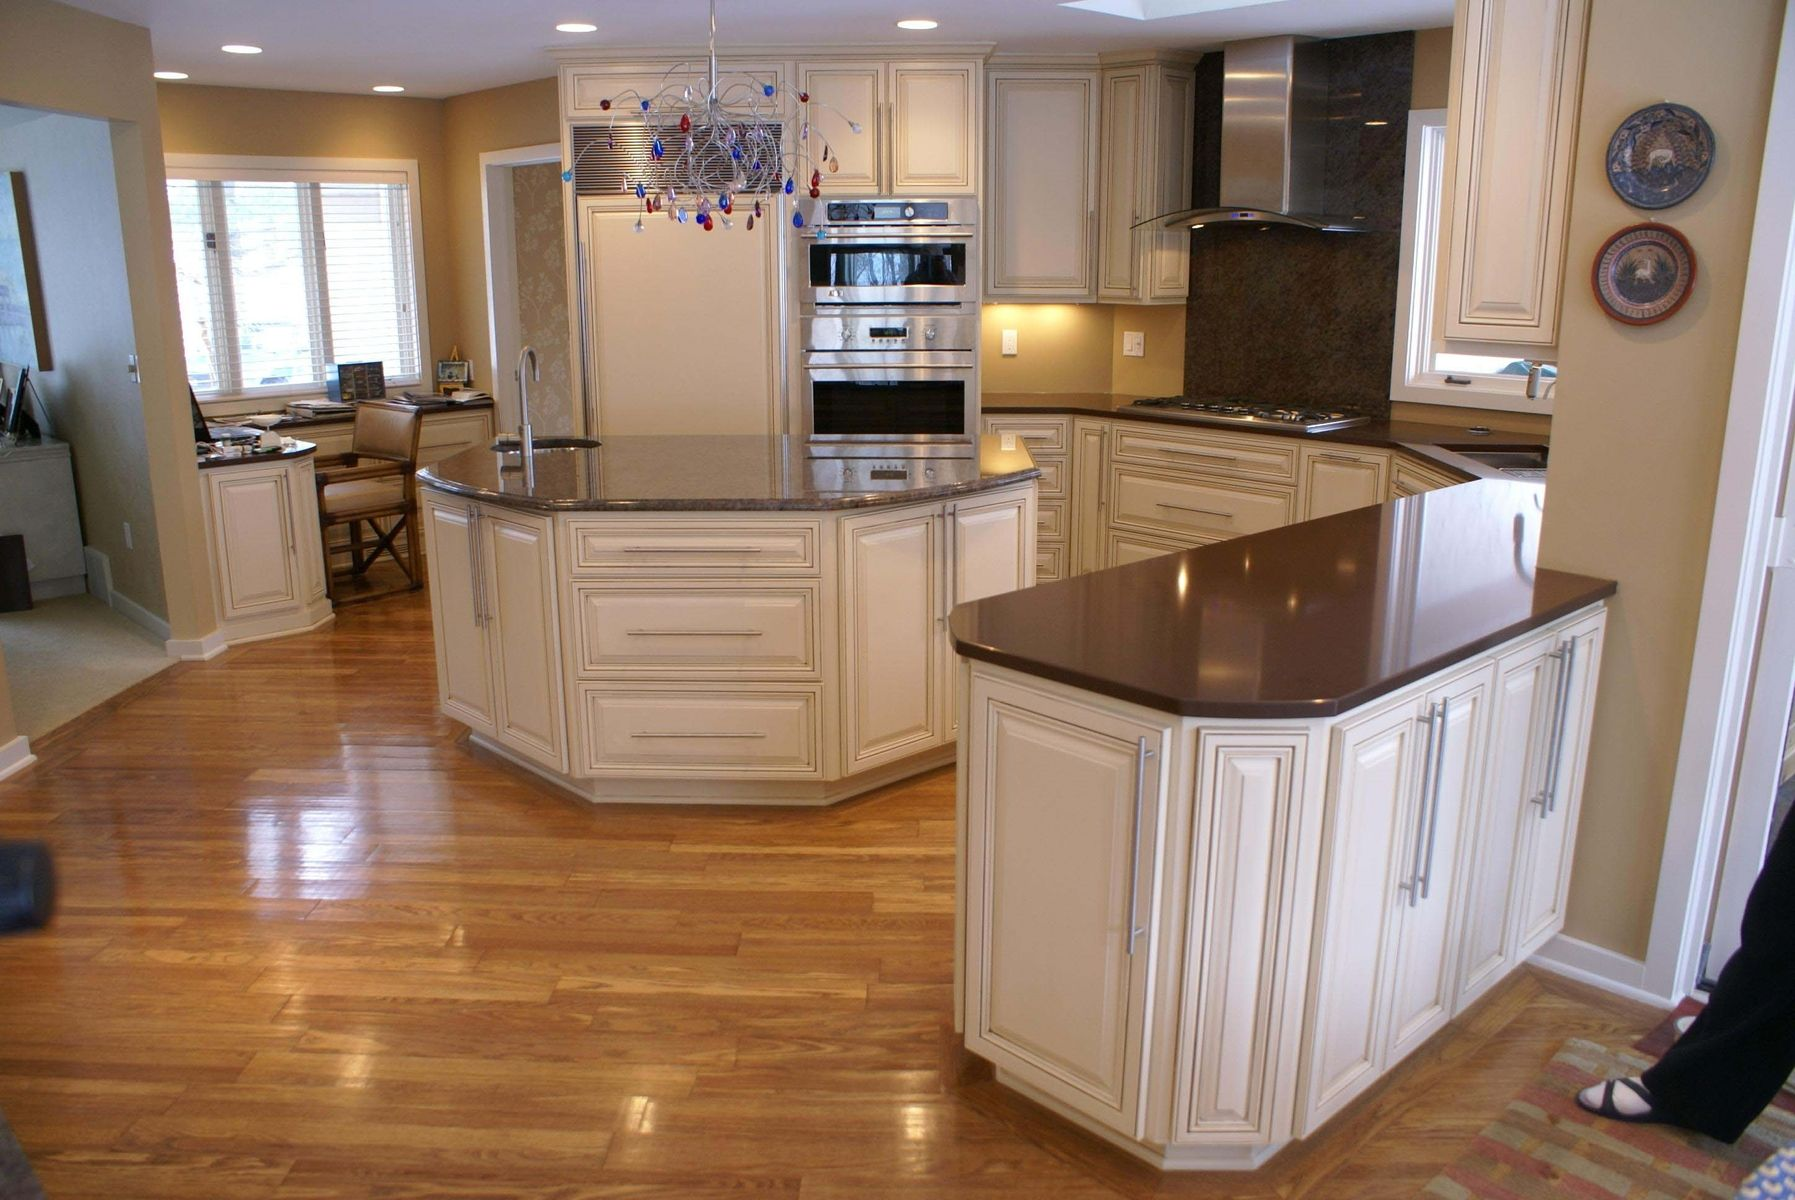 Custom Glazed Kitchen Cabinets Groton Custom Glazed Kitchen Platt